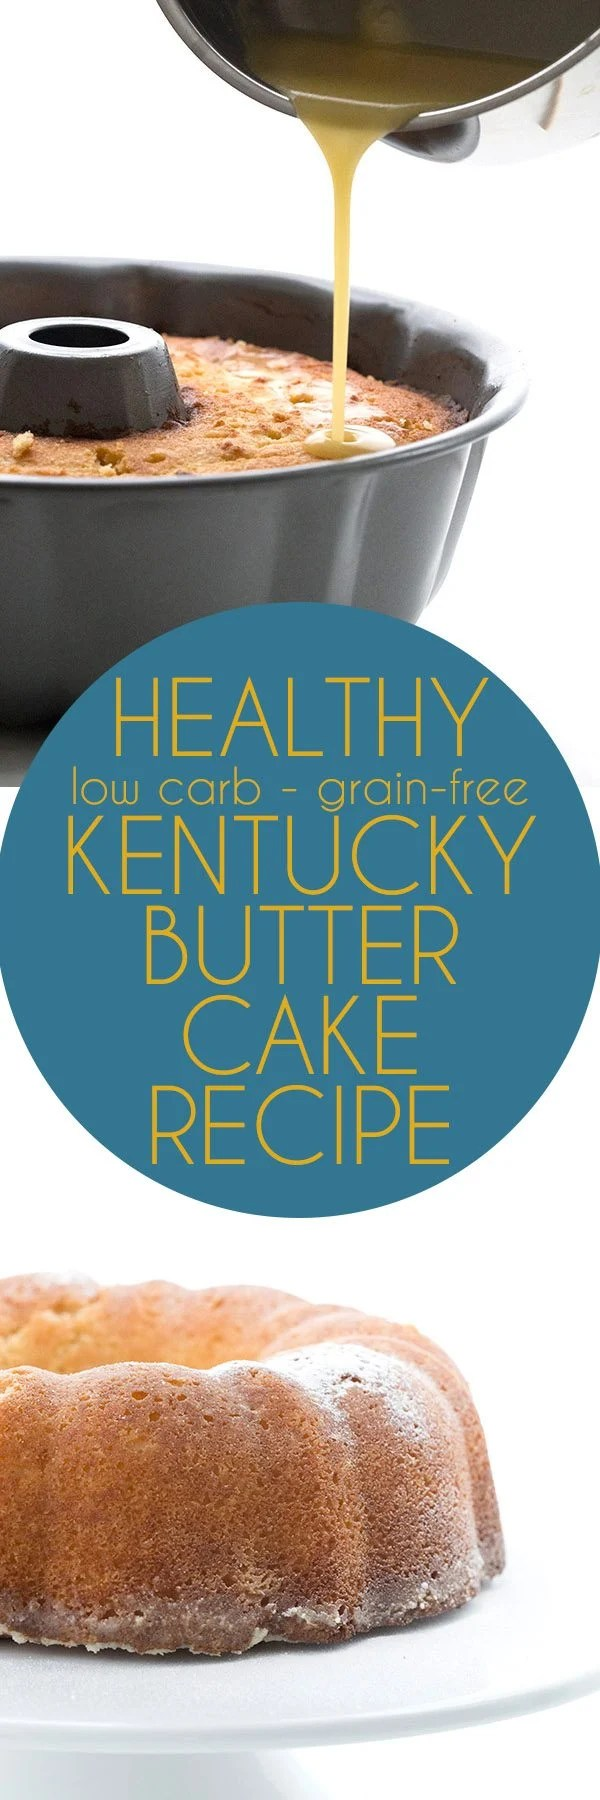 Protein Kuchen Low Carb Keto Kentucky Butter Cake Recipe All Day I Dream About Food